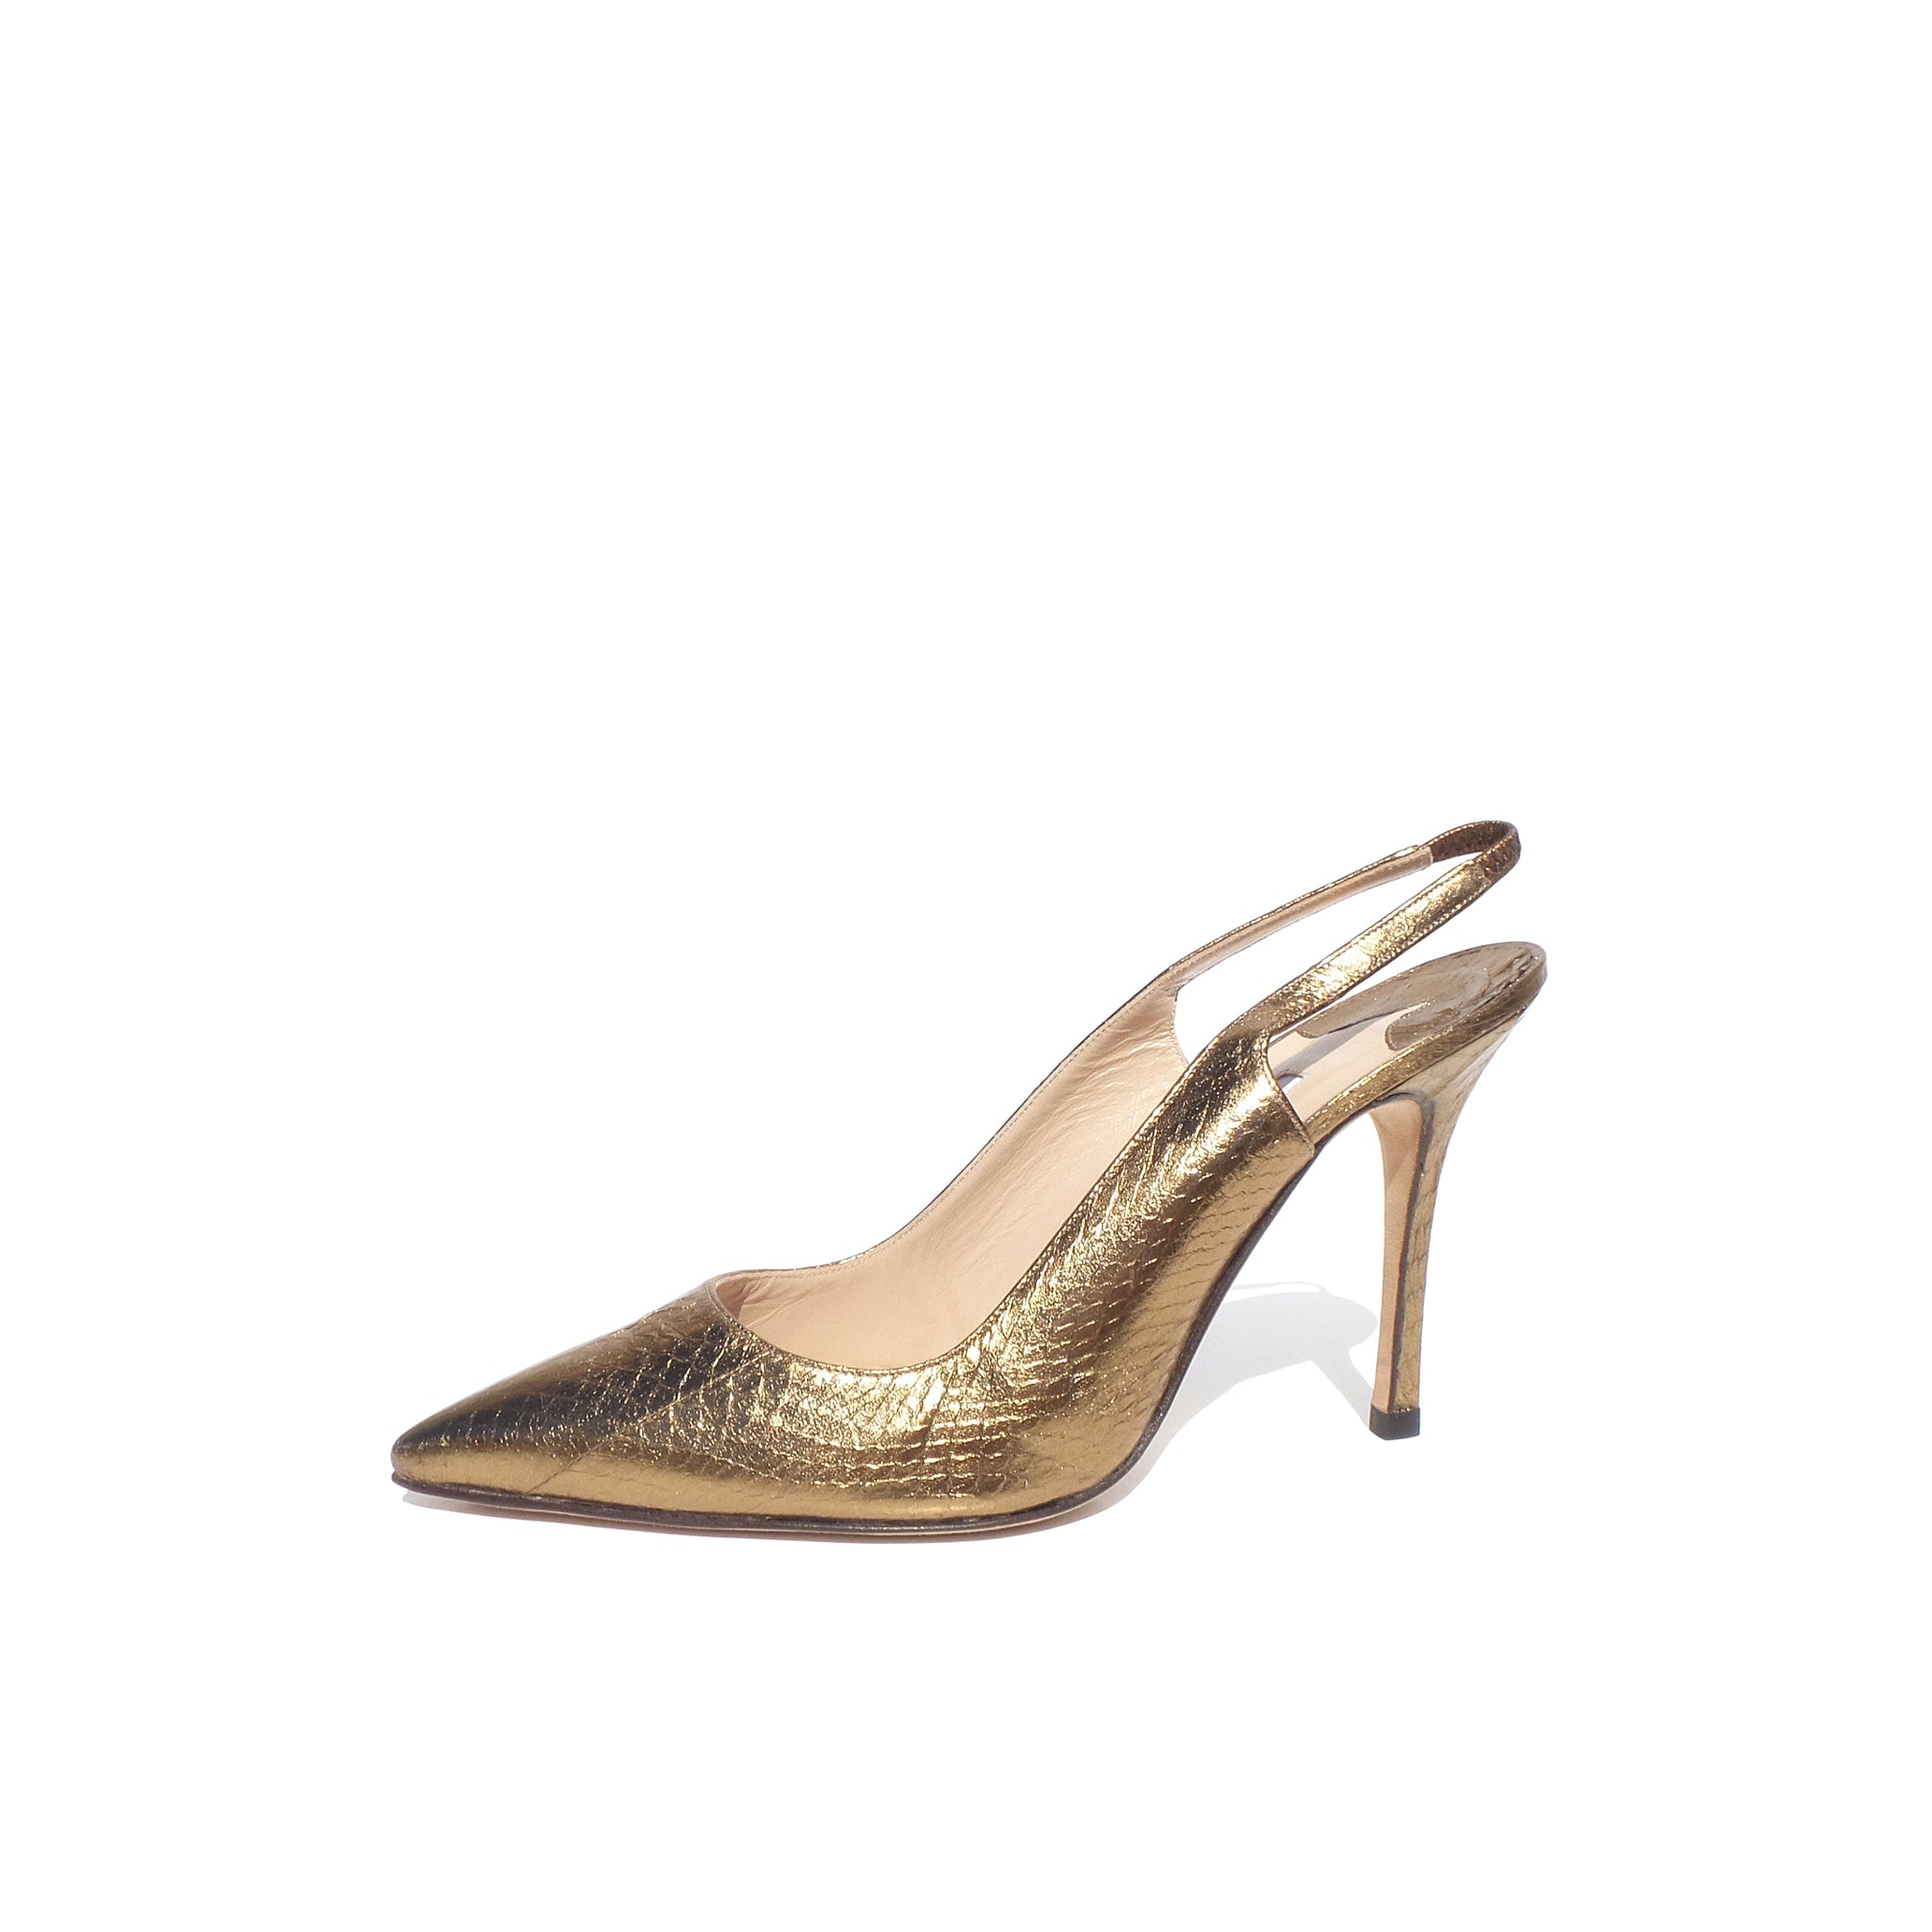 c6a7d65f46 MANOLO BLAHNIK Metallic Gold Bronze Snakeskin Point Toe Slingback Heel –  Encore Resale.com